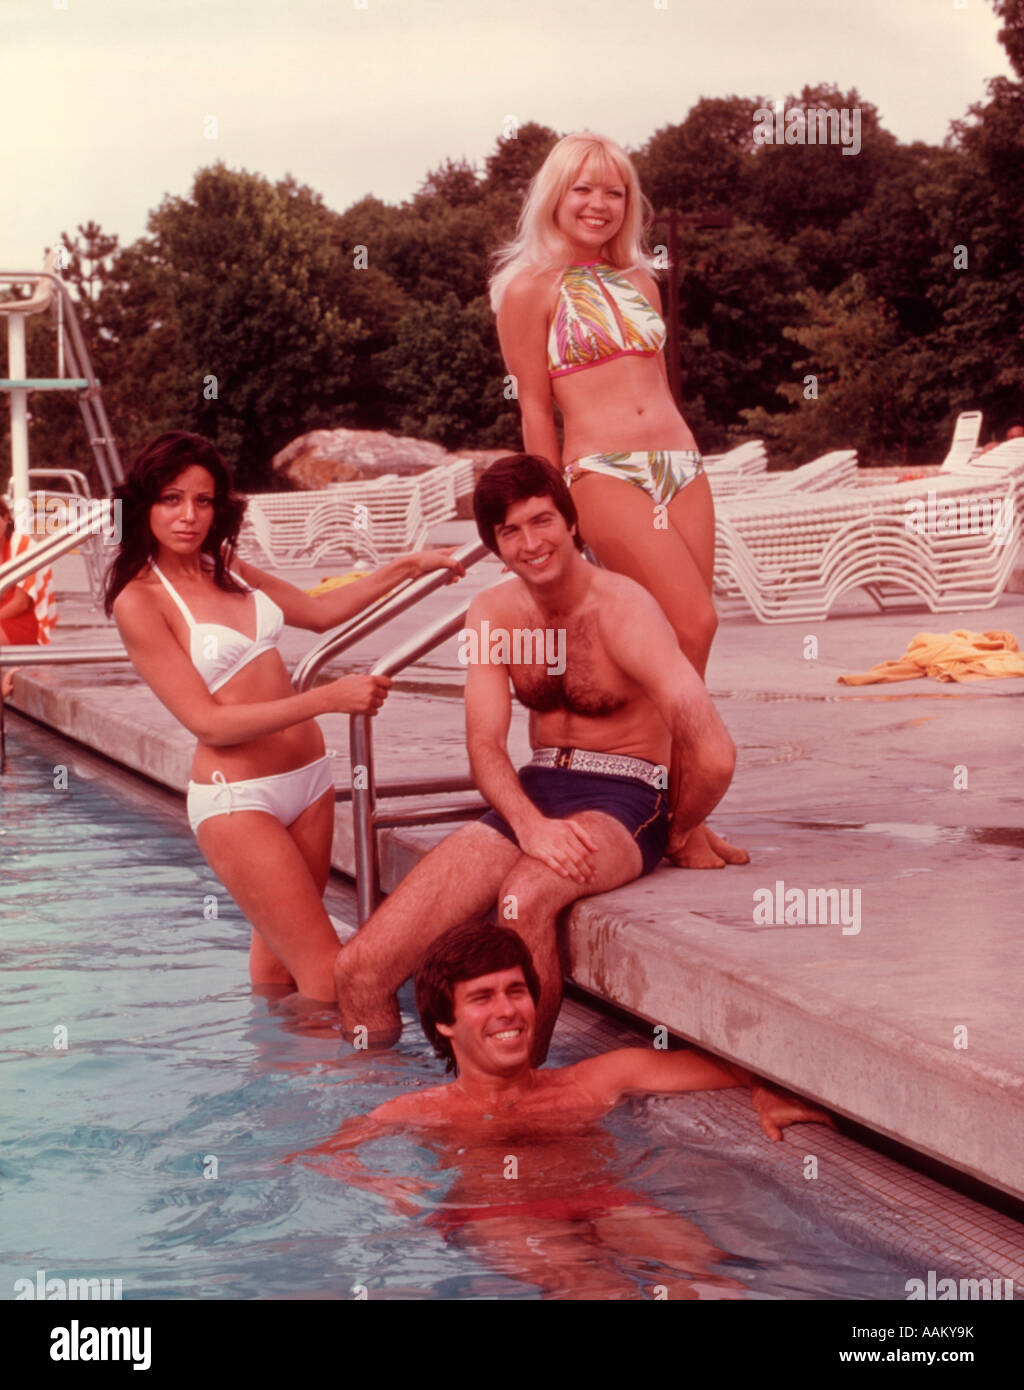 Outdoor Swimming Pool 1960s Stock Photos Outdoor Swimming Pool 1960s Stock Images Alamy